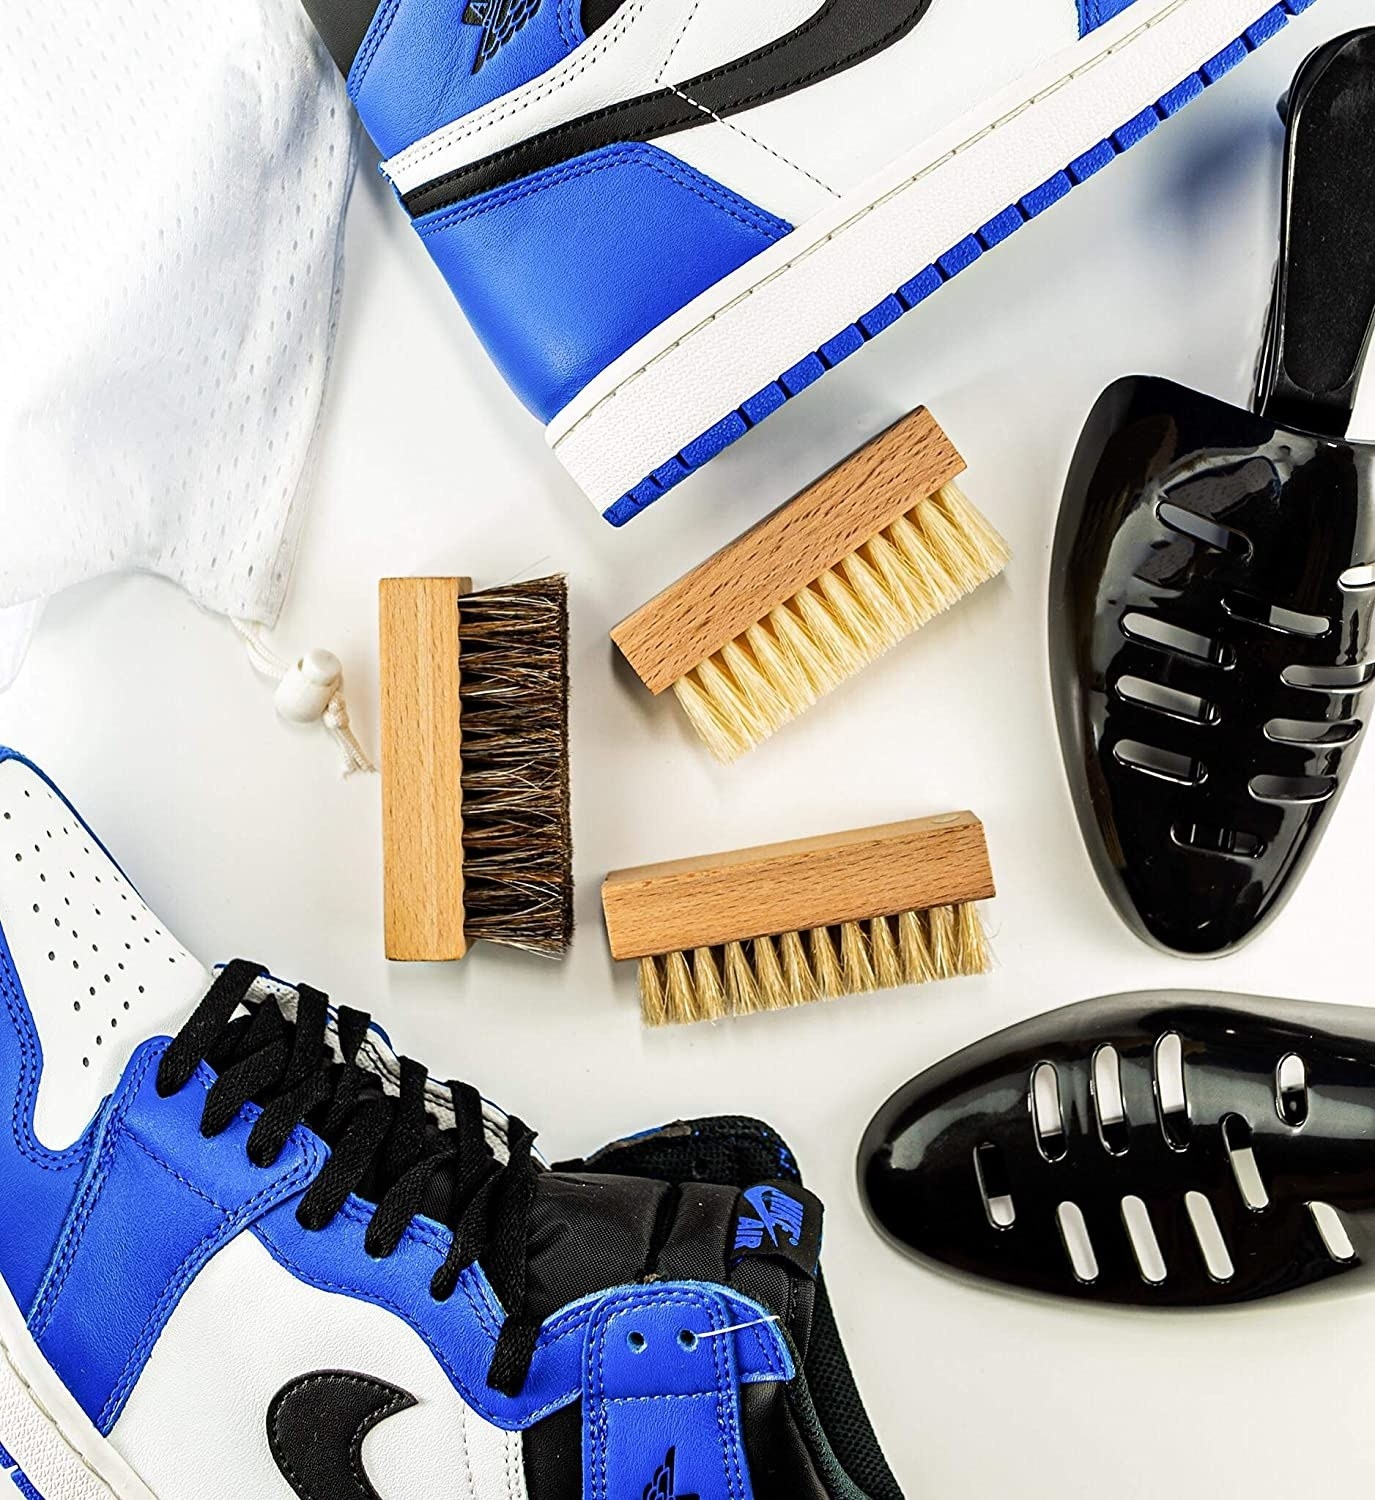 the shoe cleaning kit components and a pair of shoes